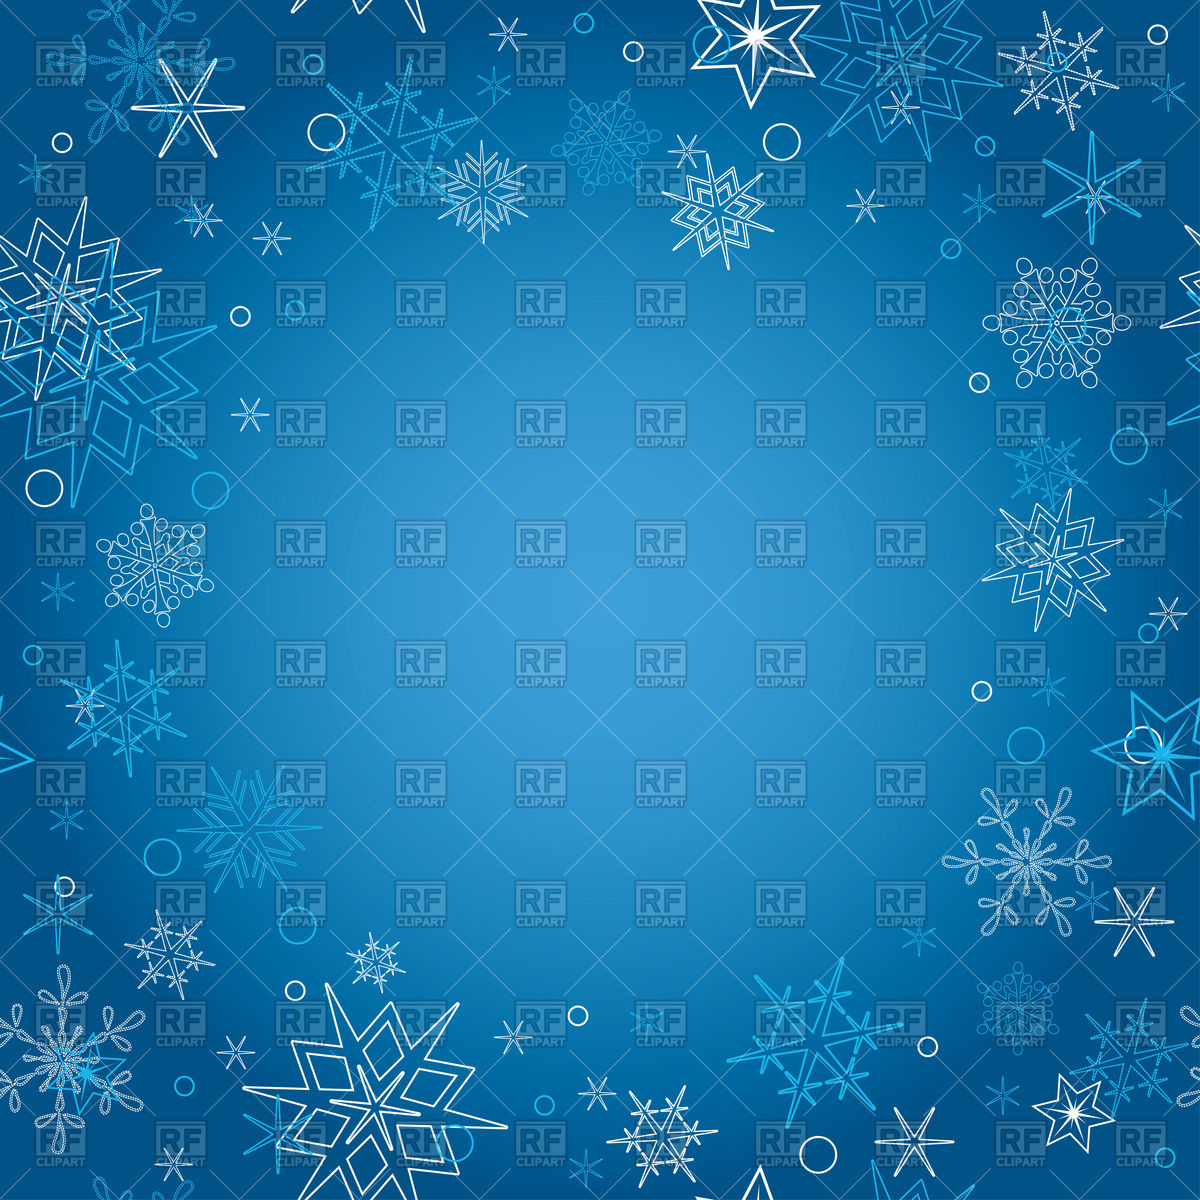 free download blue christmas background with snowflakes vector image of 1200x1200 for your desktop mobile tablet explore 30 christmas picture backgrounds free christmas wallpapers wallpapersafari